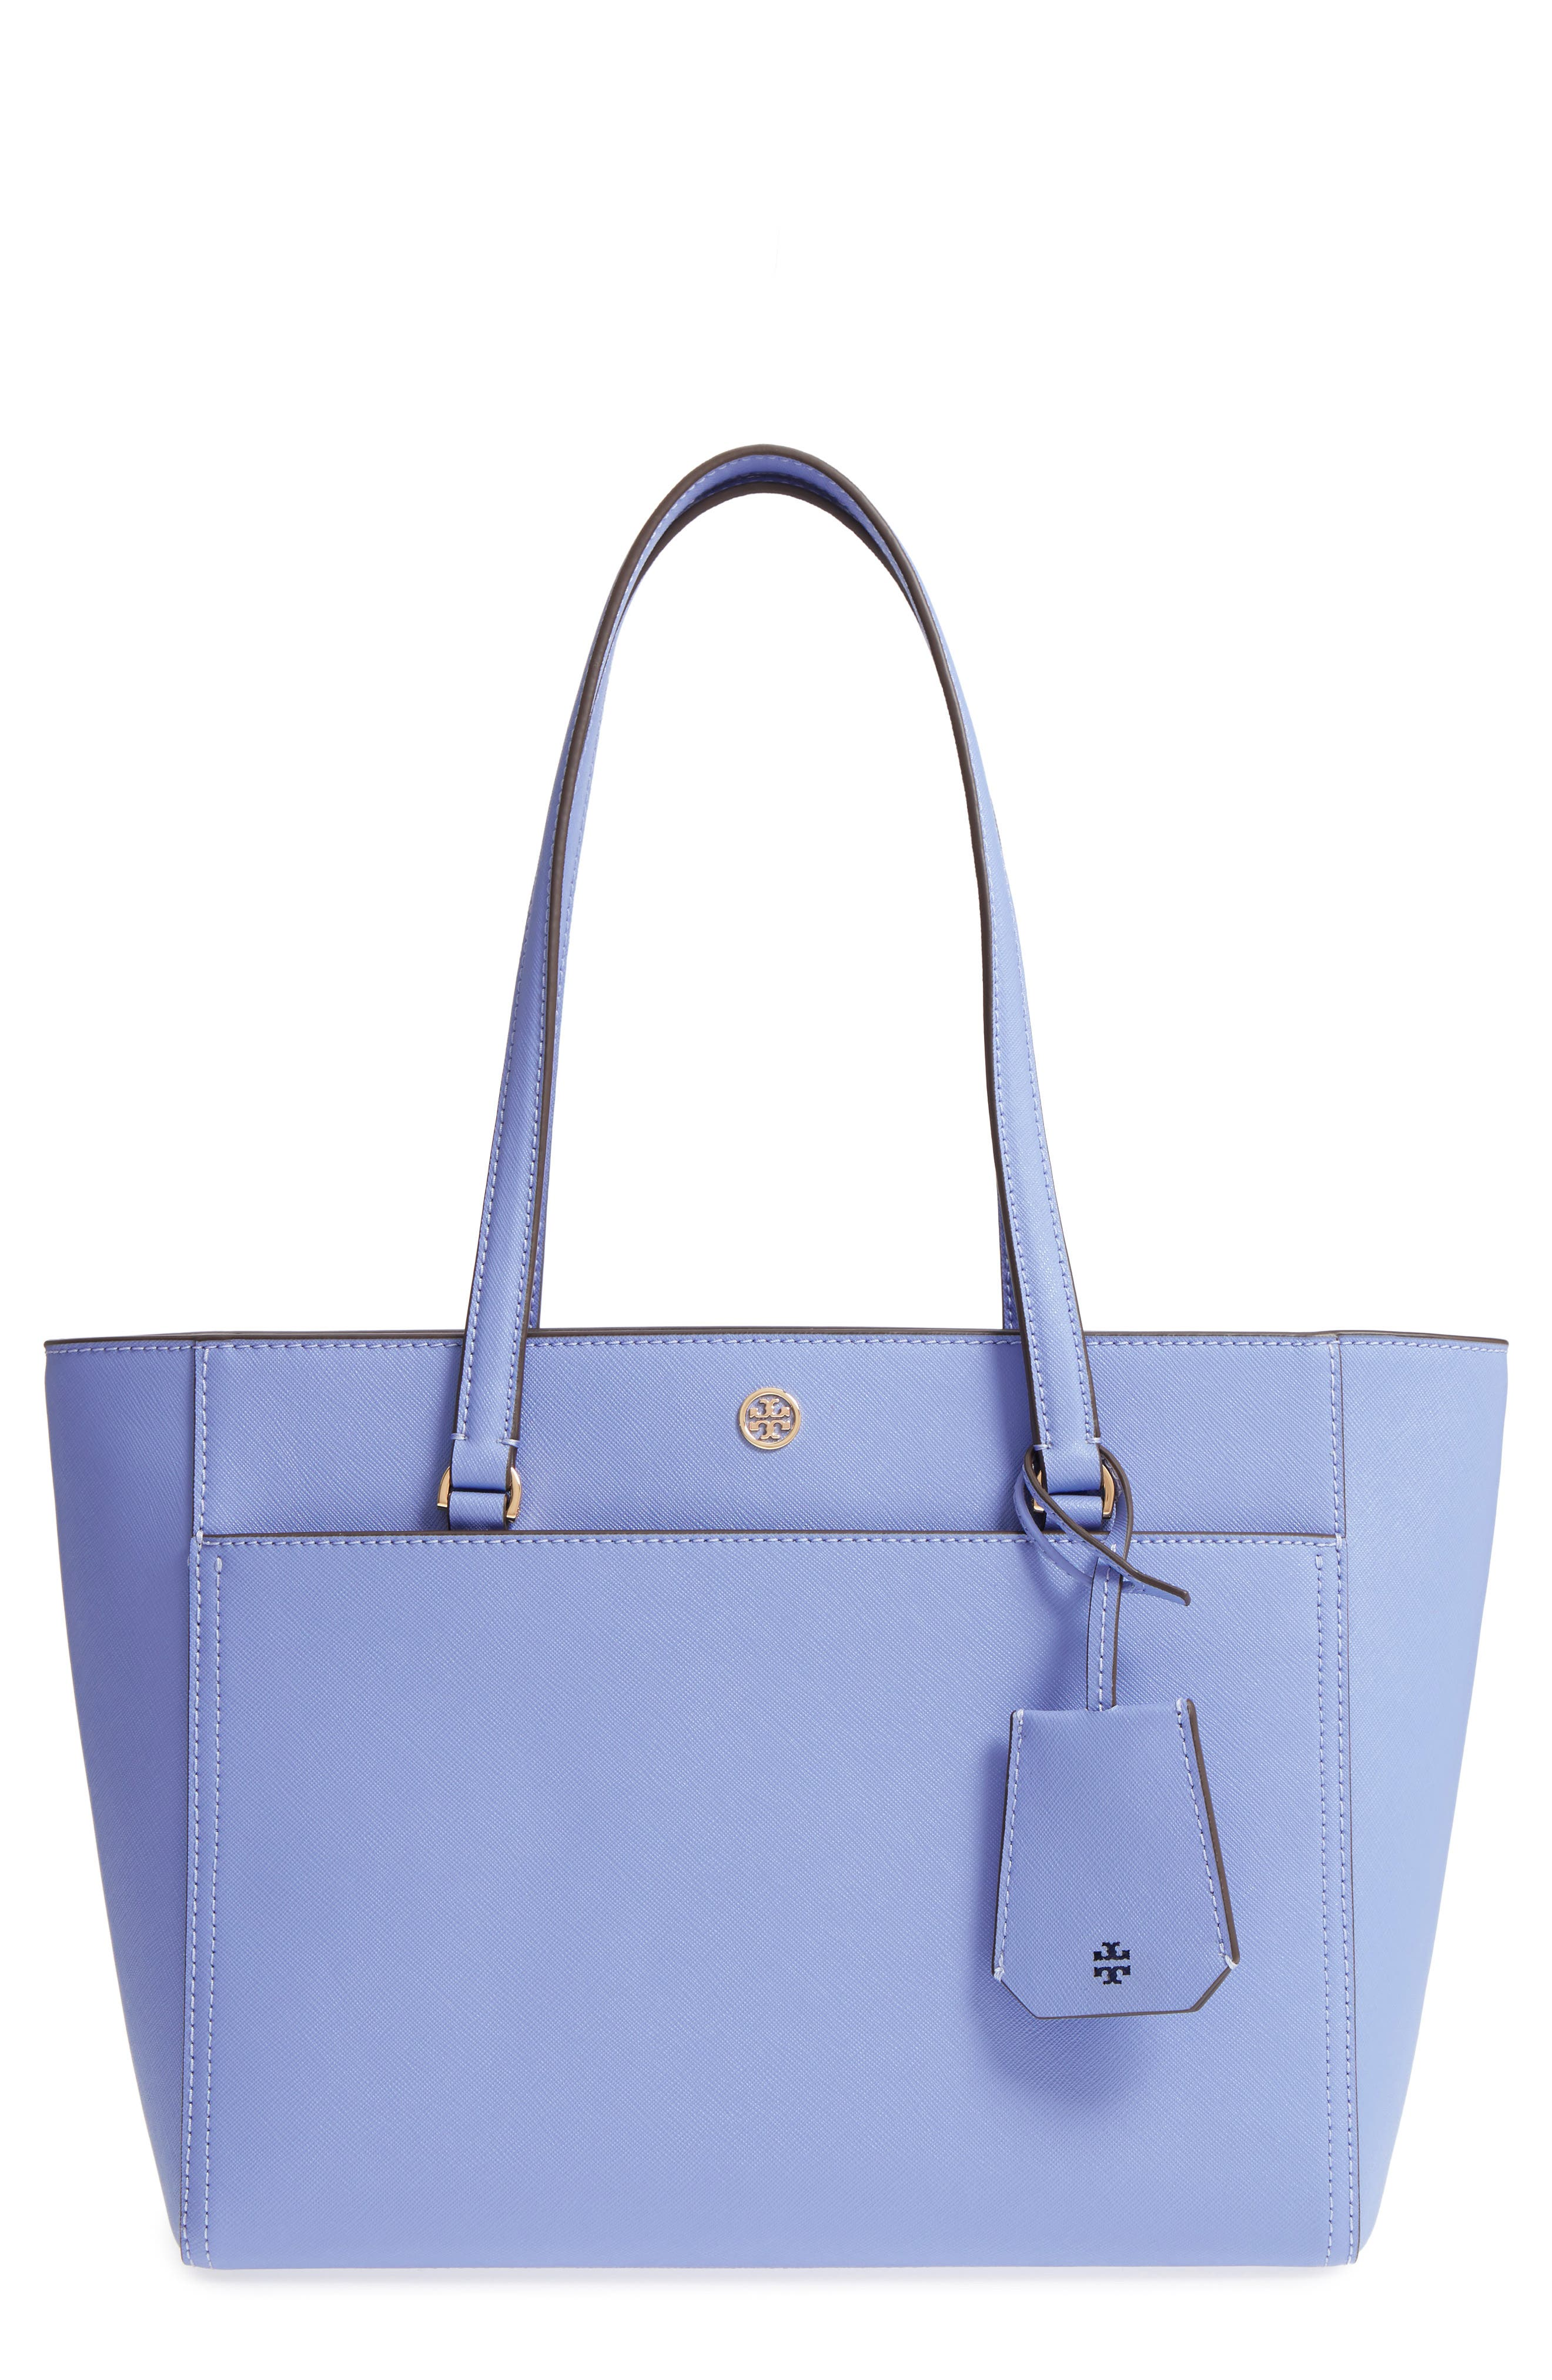 Alternate Image 1 Selected - Tory Burch Small Robinson Leather Tote